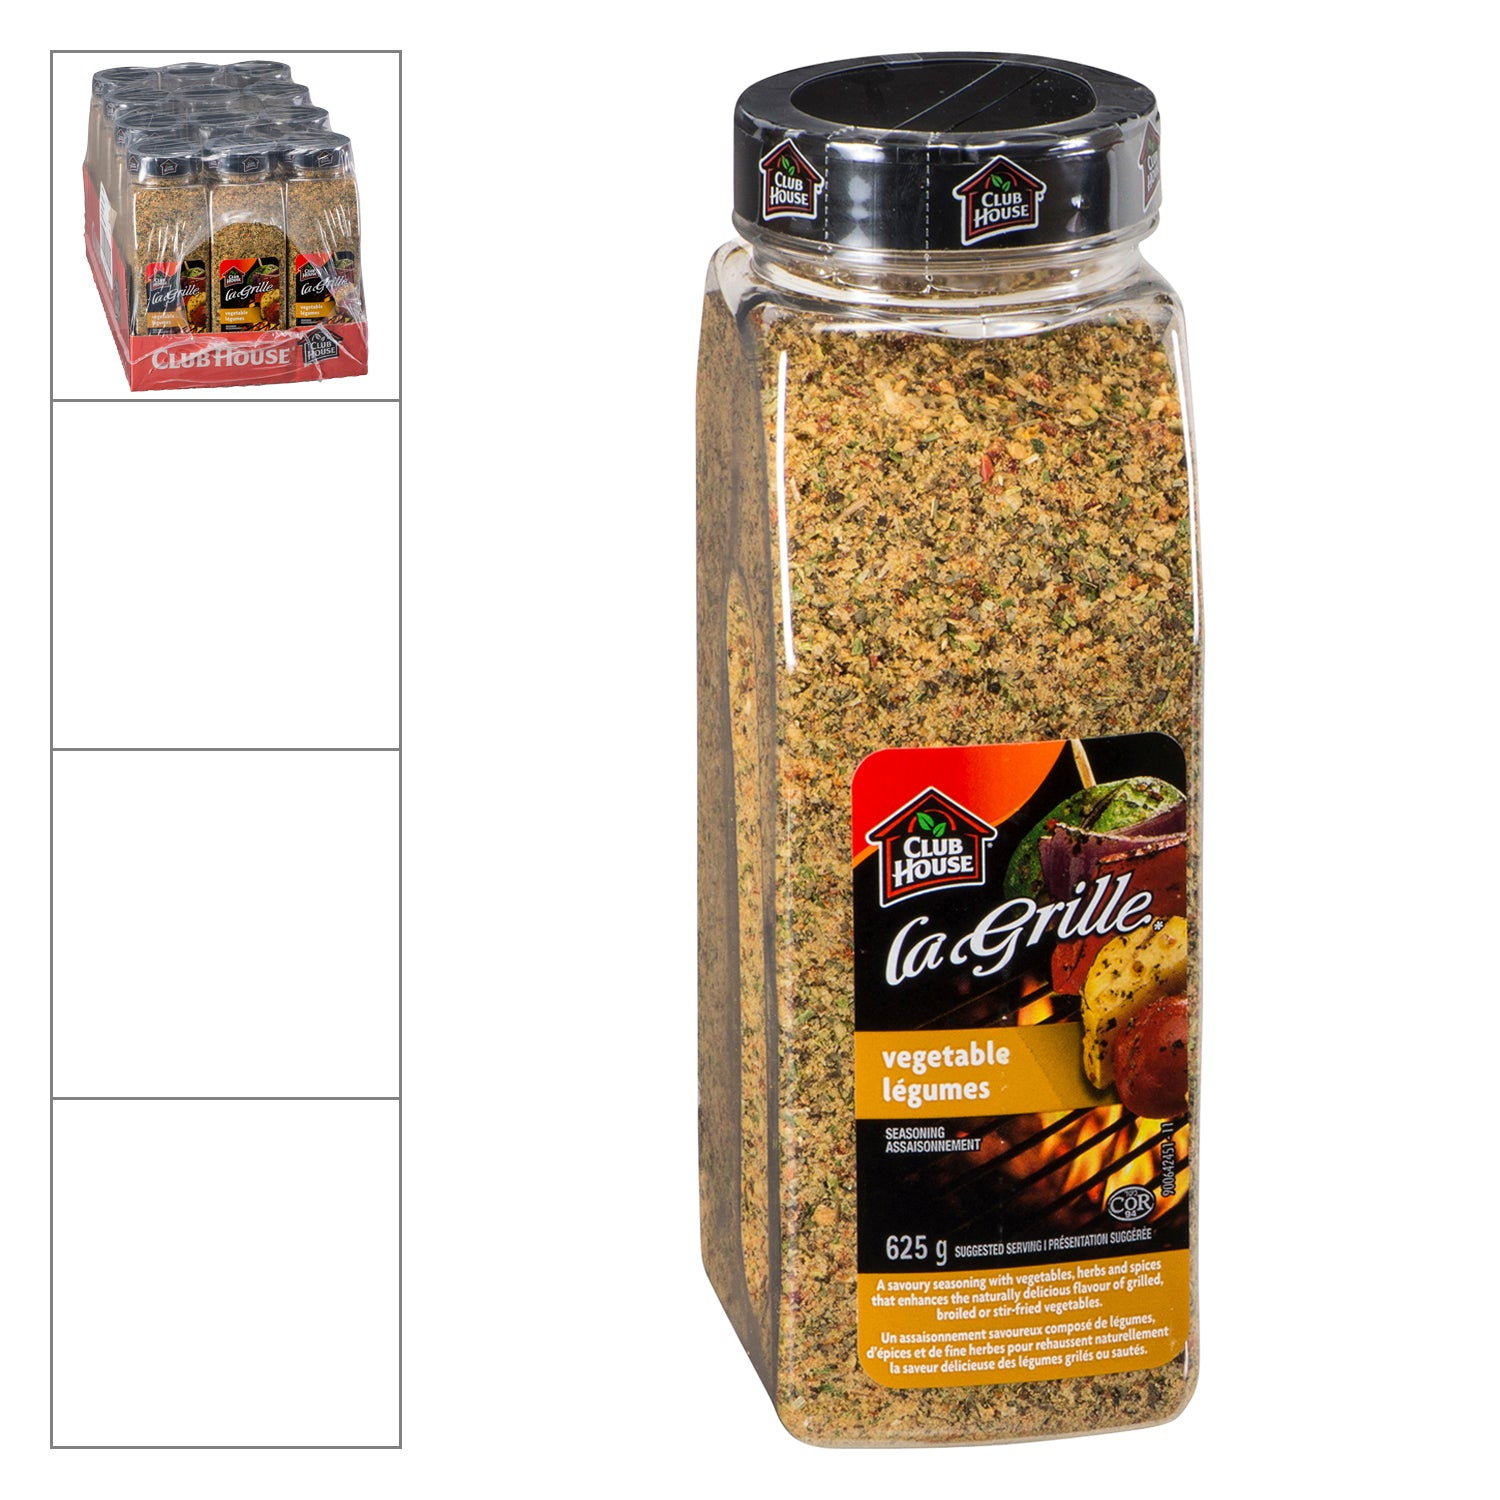 Club House La Grille Vegetable Seasoning 625 g - 12 Pack [$16.50/each]